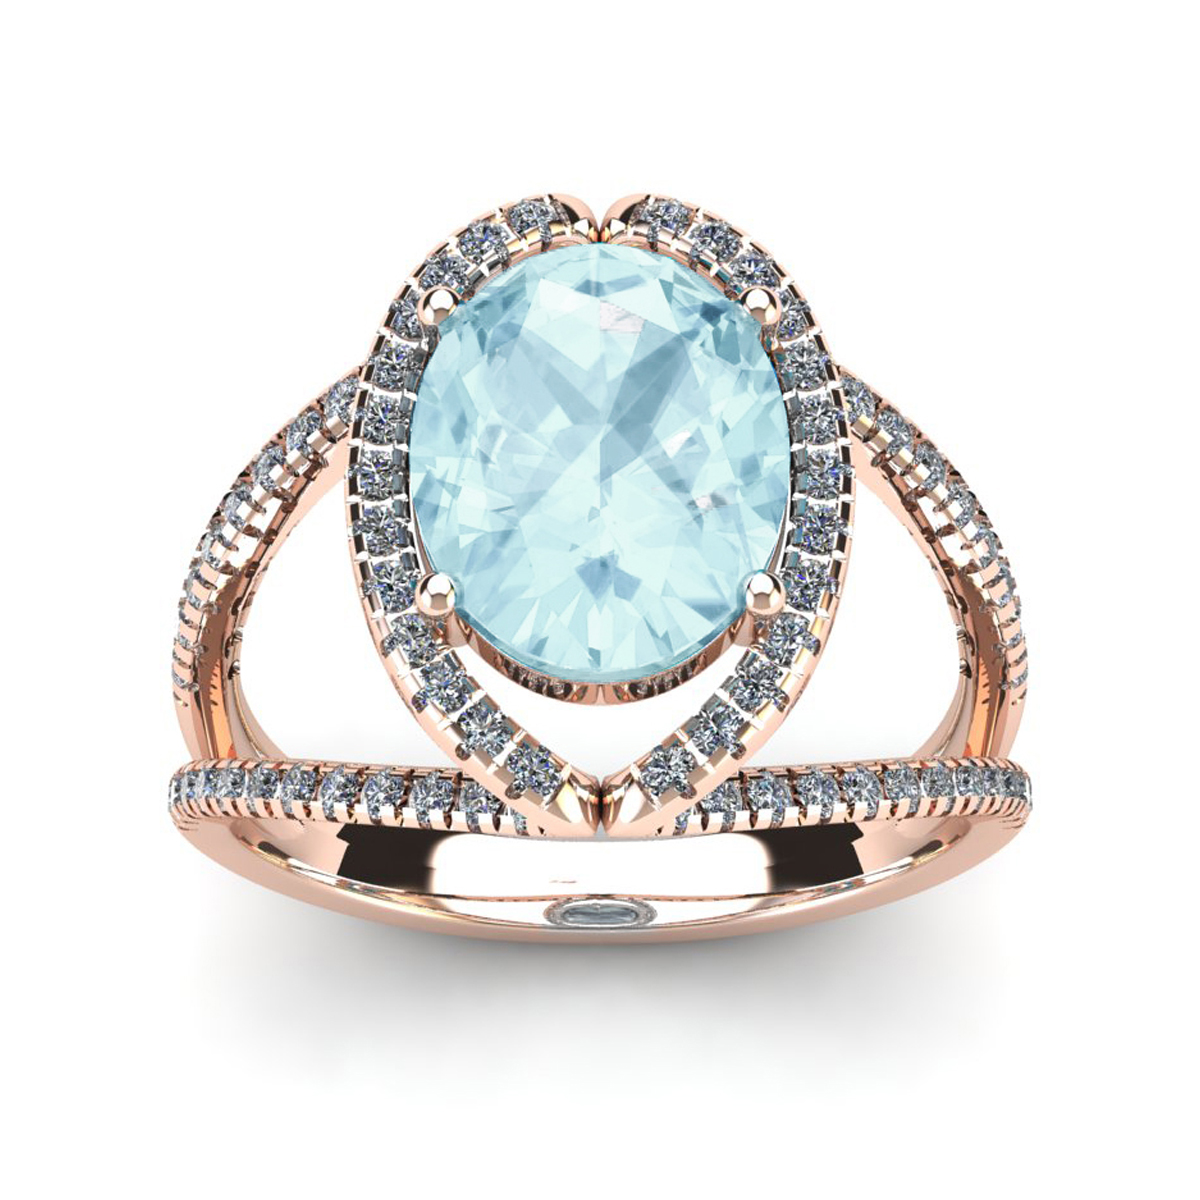 6ca6aa6955097 Aquamarine Rings | March Birthstone | 2 3/4ct Oval Aquamarine and ...